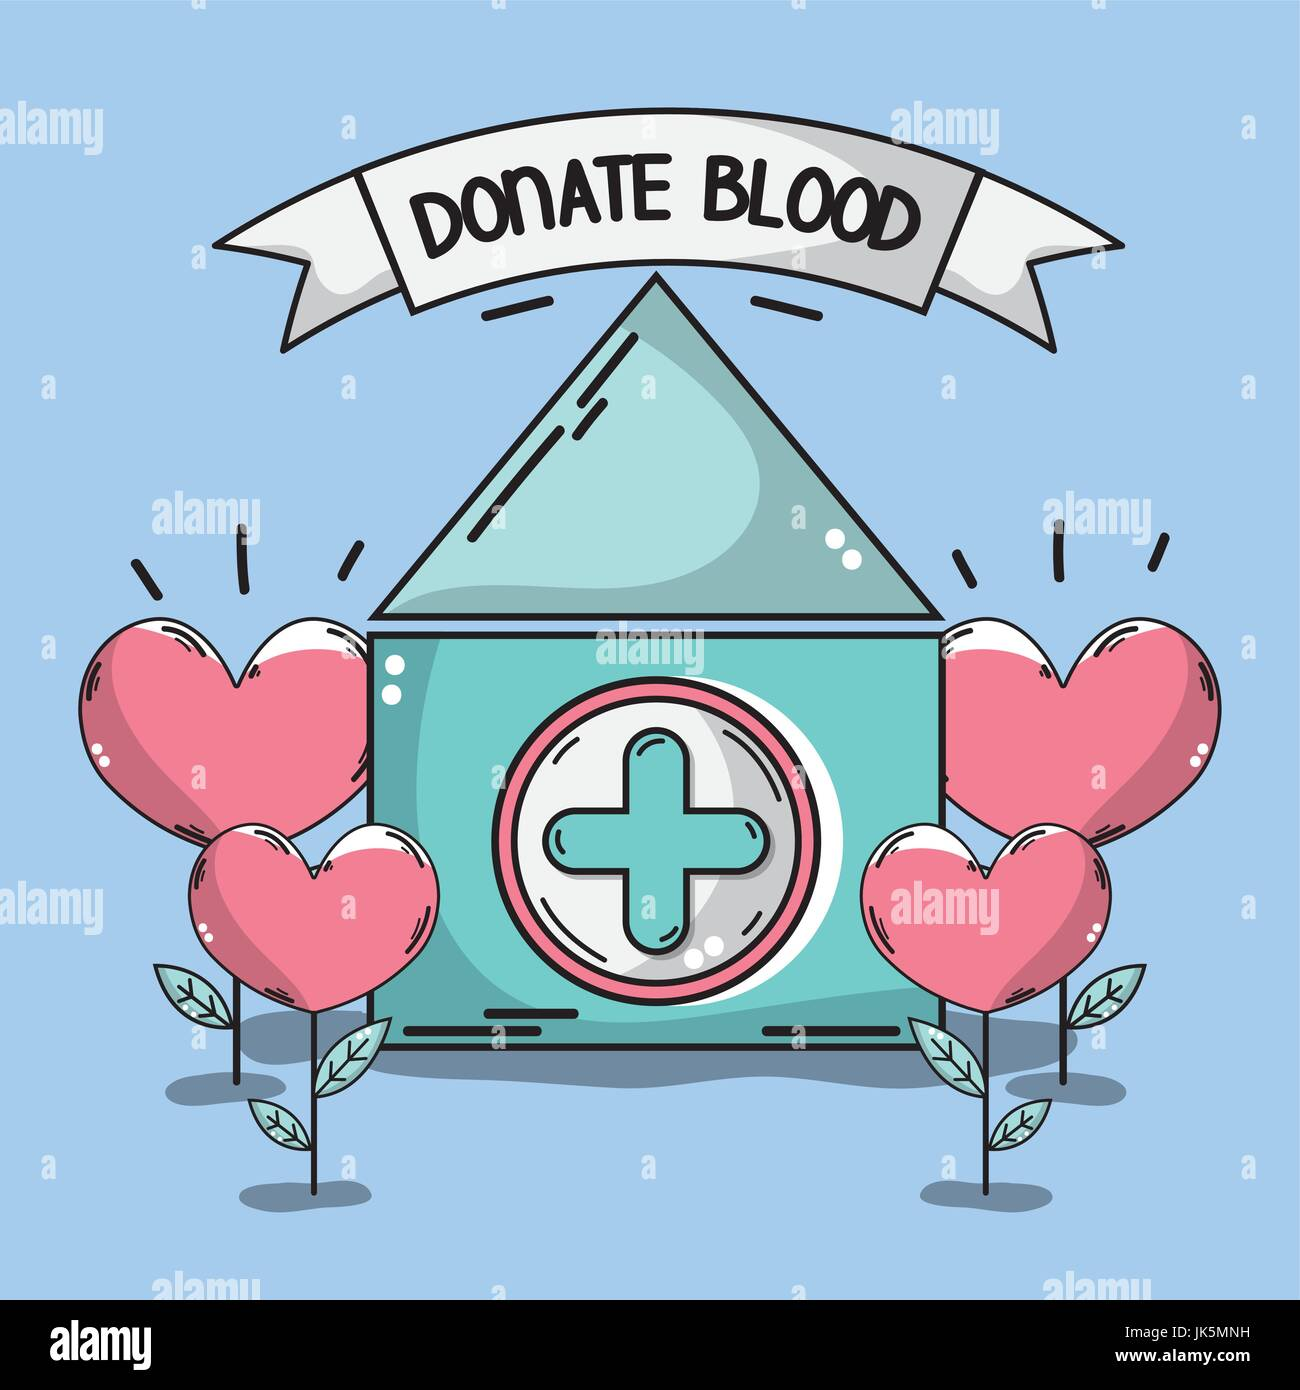 blood donation house with heart plant stock vector art